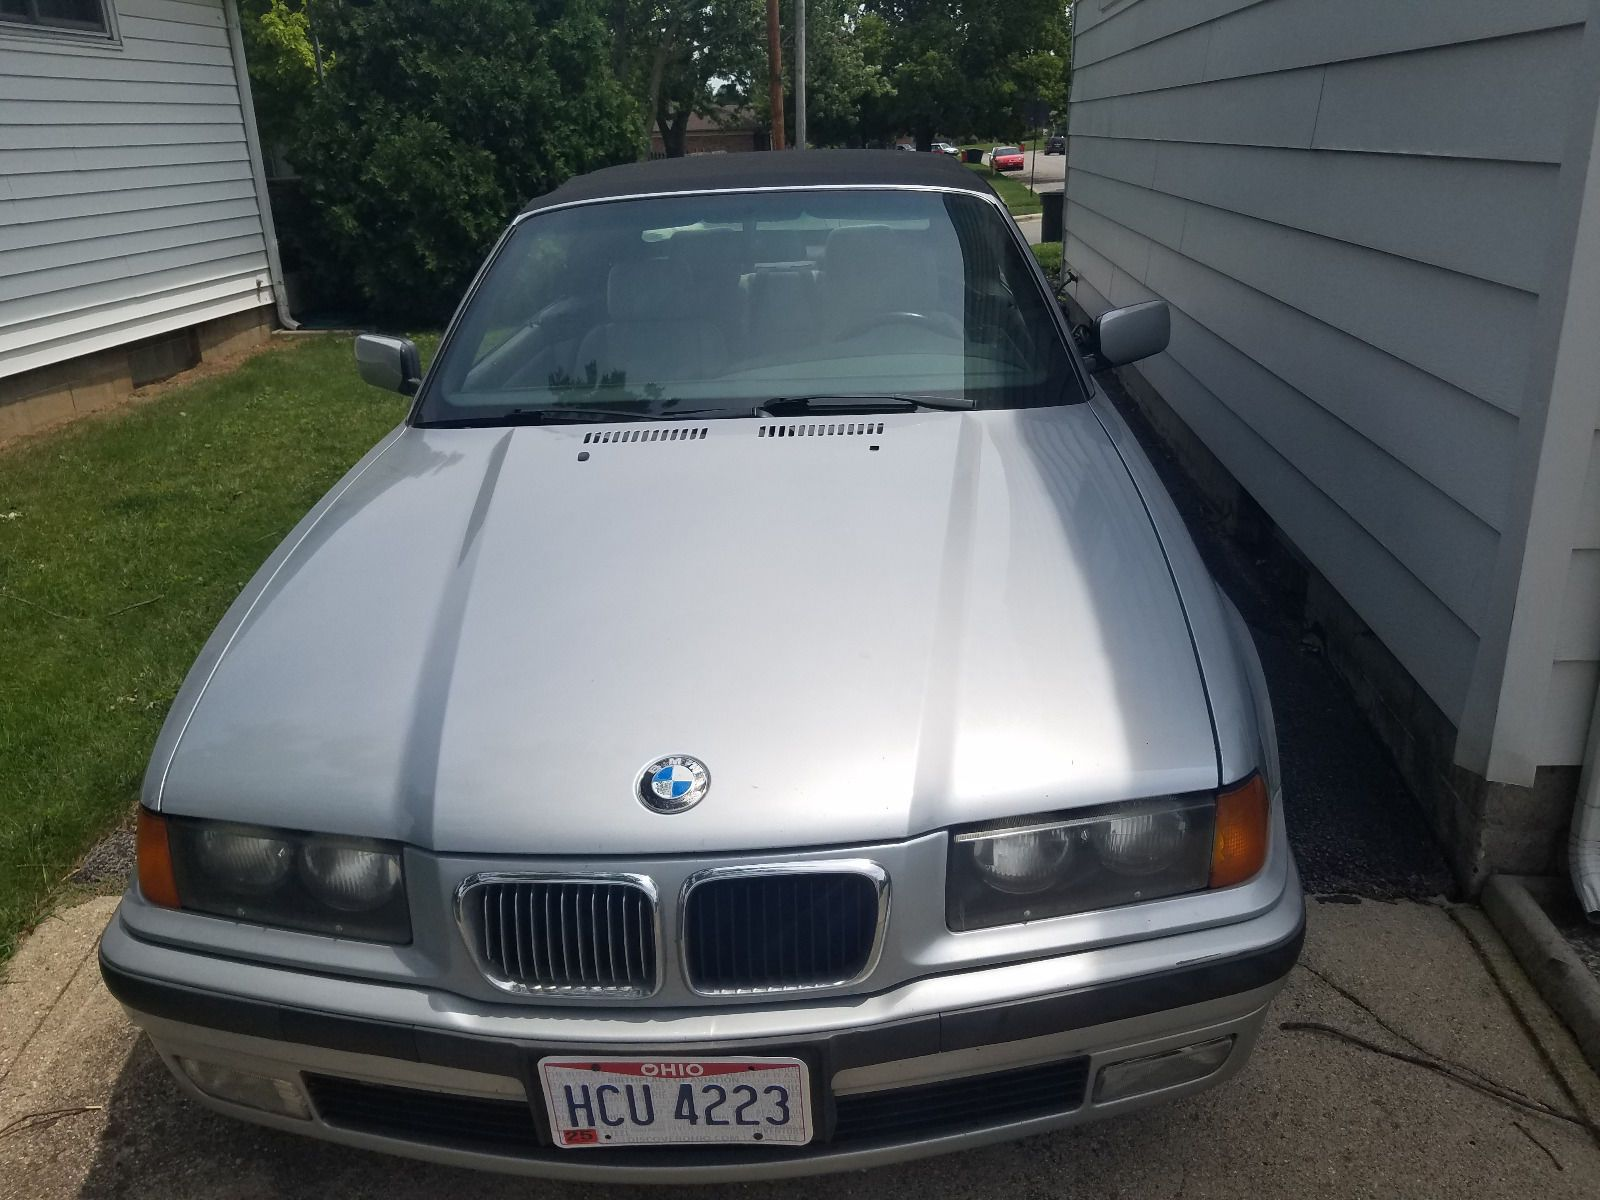 Cool Great BMW Series Silver BMW I Convertible - 1997 bmw 328i convertible